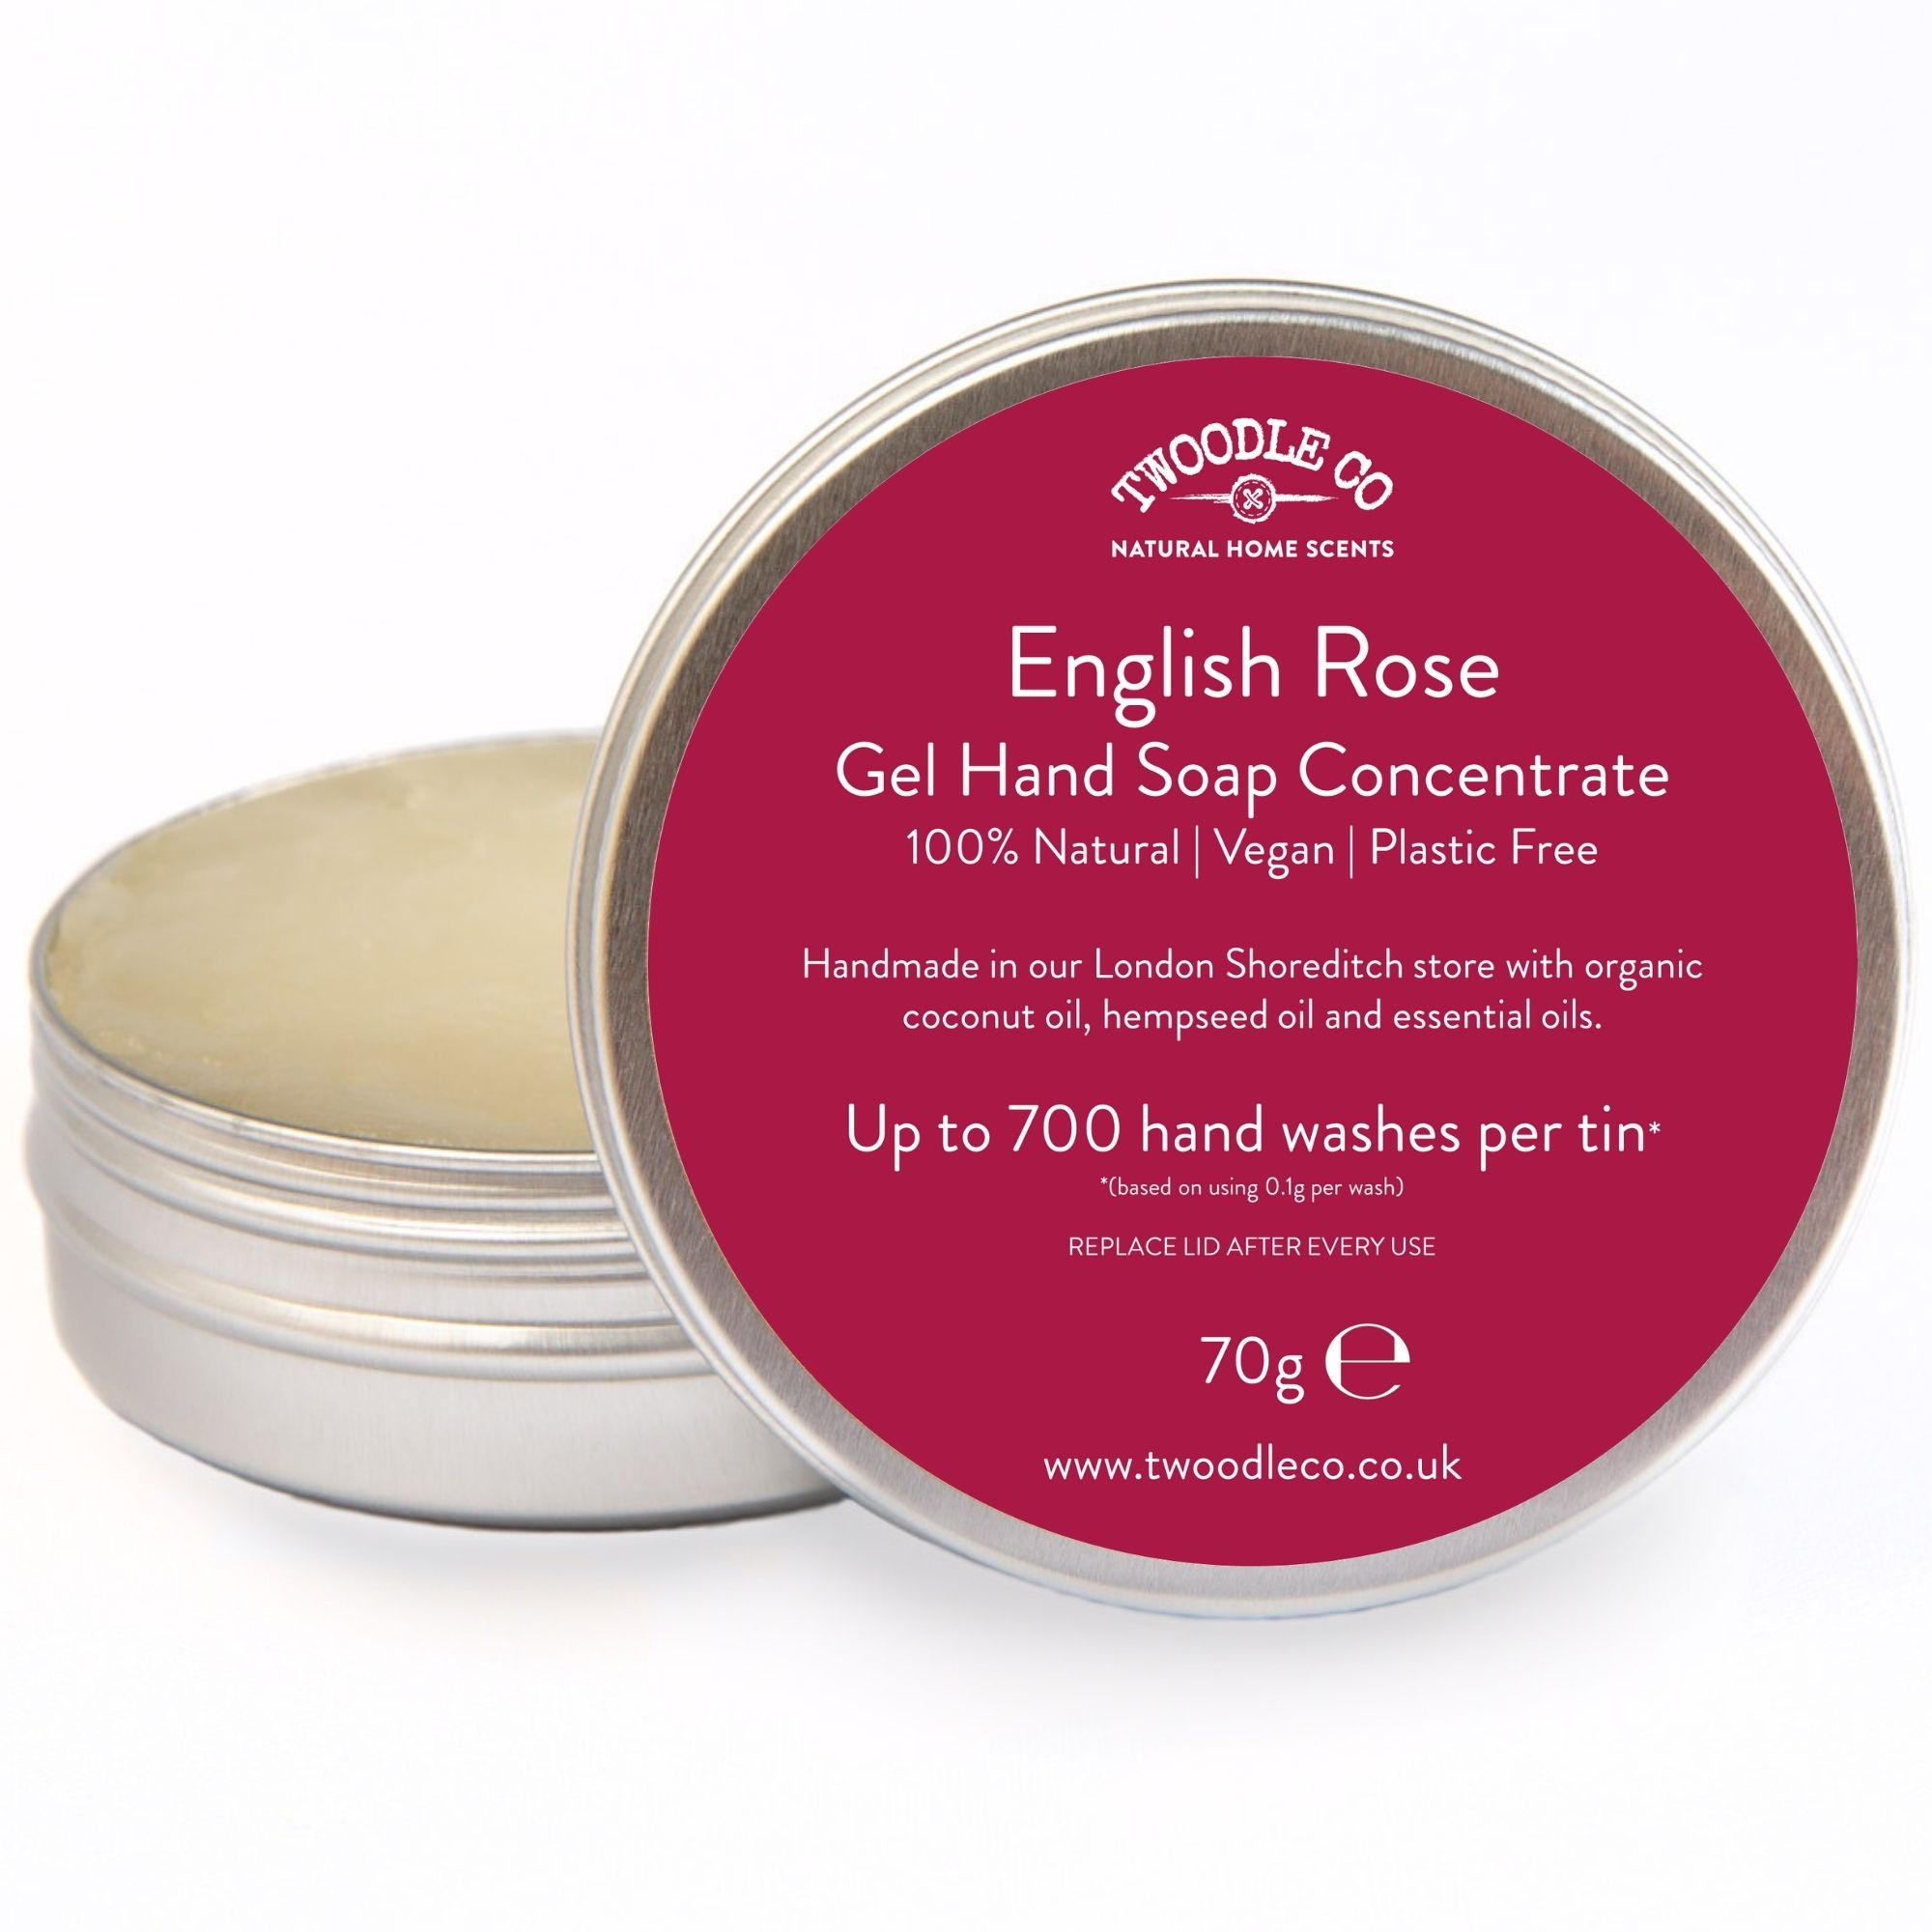 English Rose Gel Hand Soap Concentrate